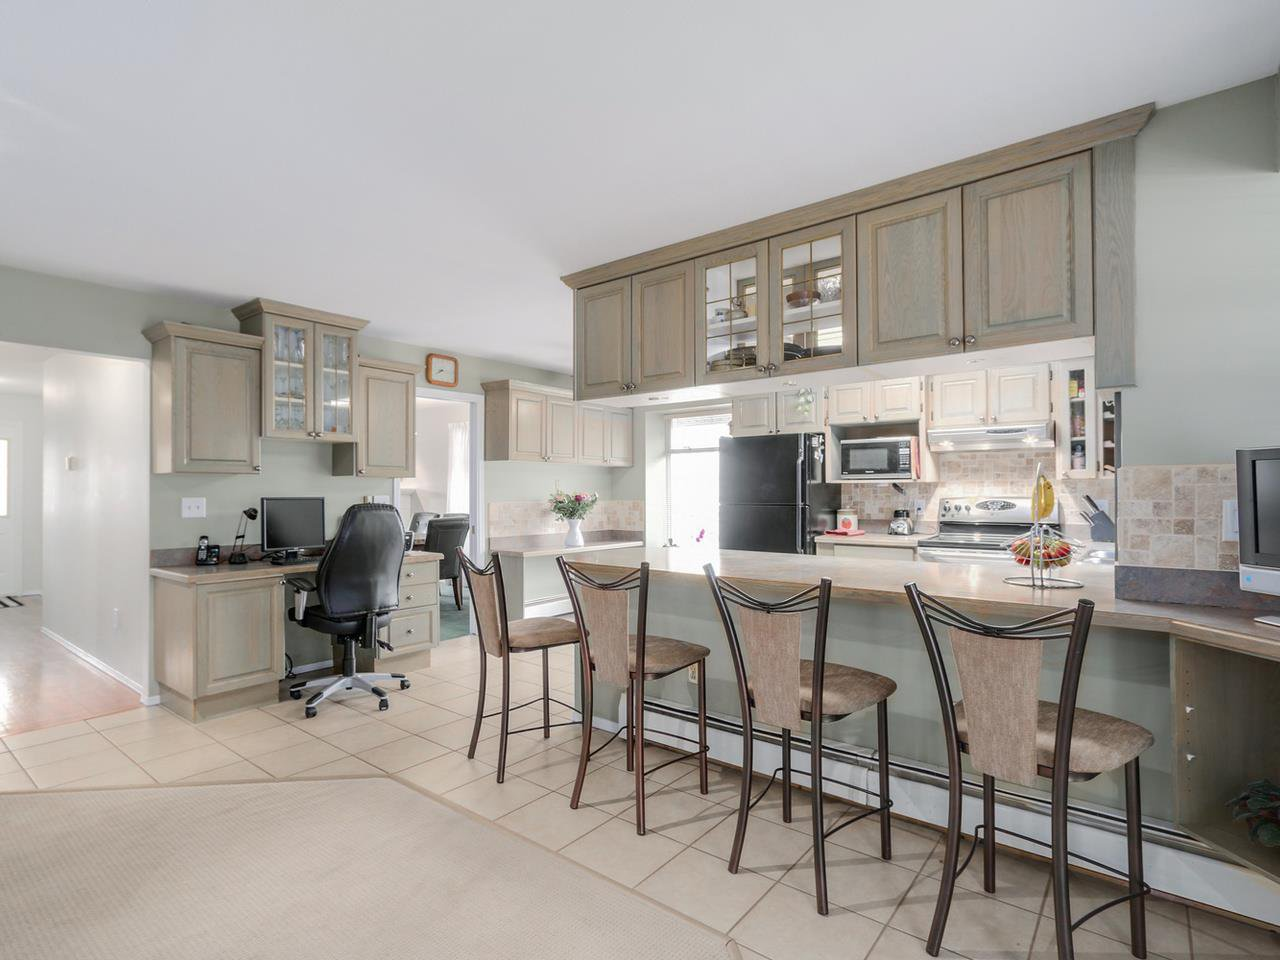 """Photo 7: Photos: 2559 BLUEBELL Avenue in Coquitlam: Summitt View House for sale in """"SUMMITT VIEW"""" : MLS®# R2064204"""